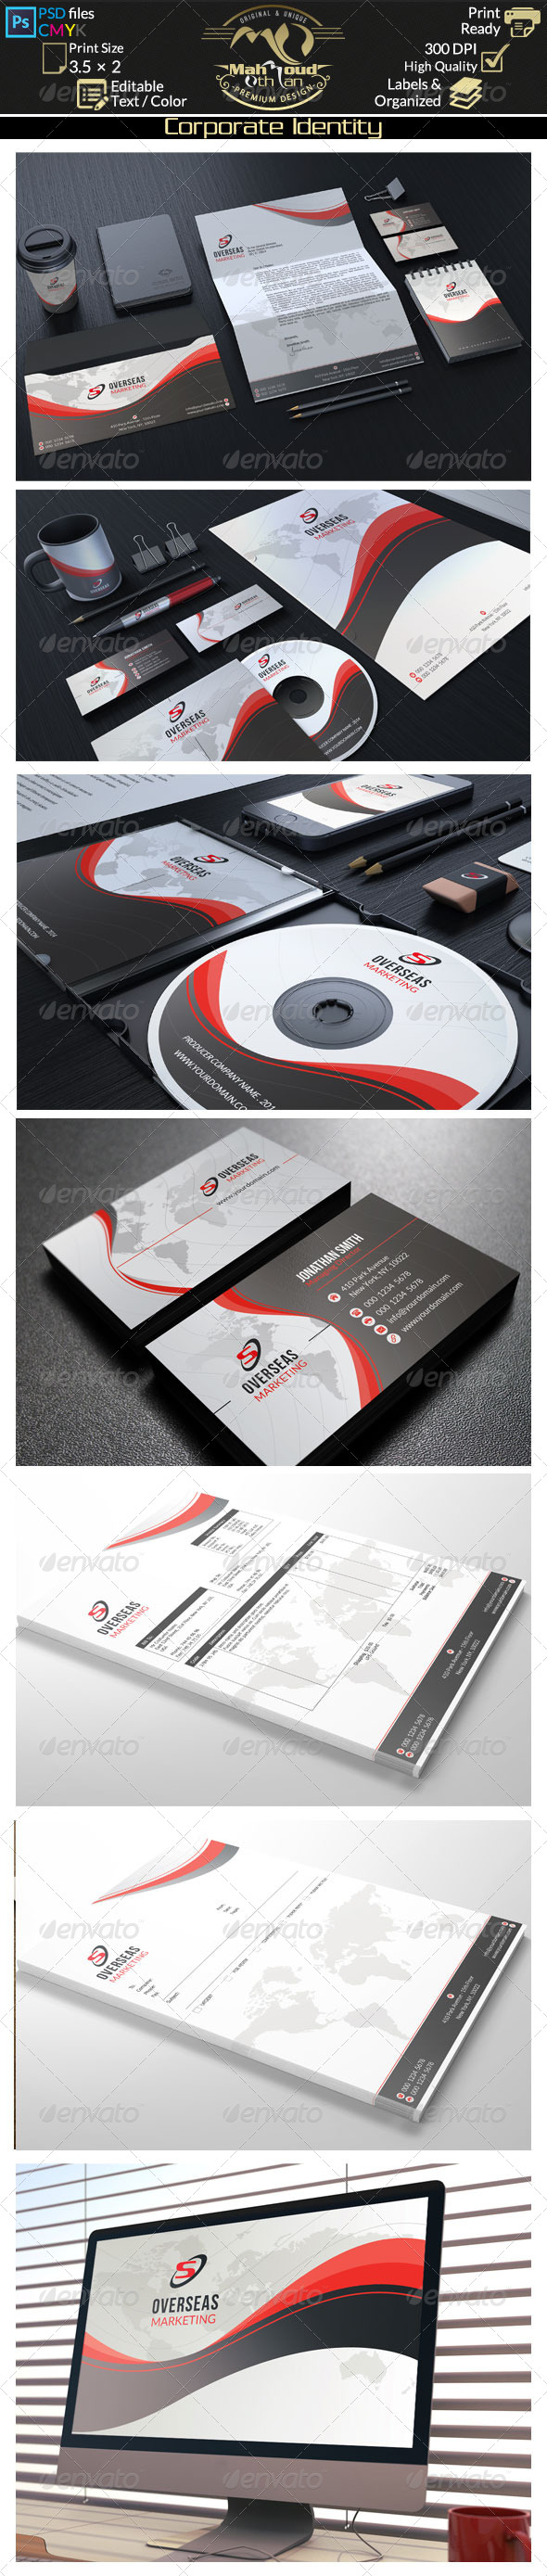 GraphicRiver Modern Corporate Identity 02 8497148